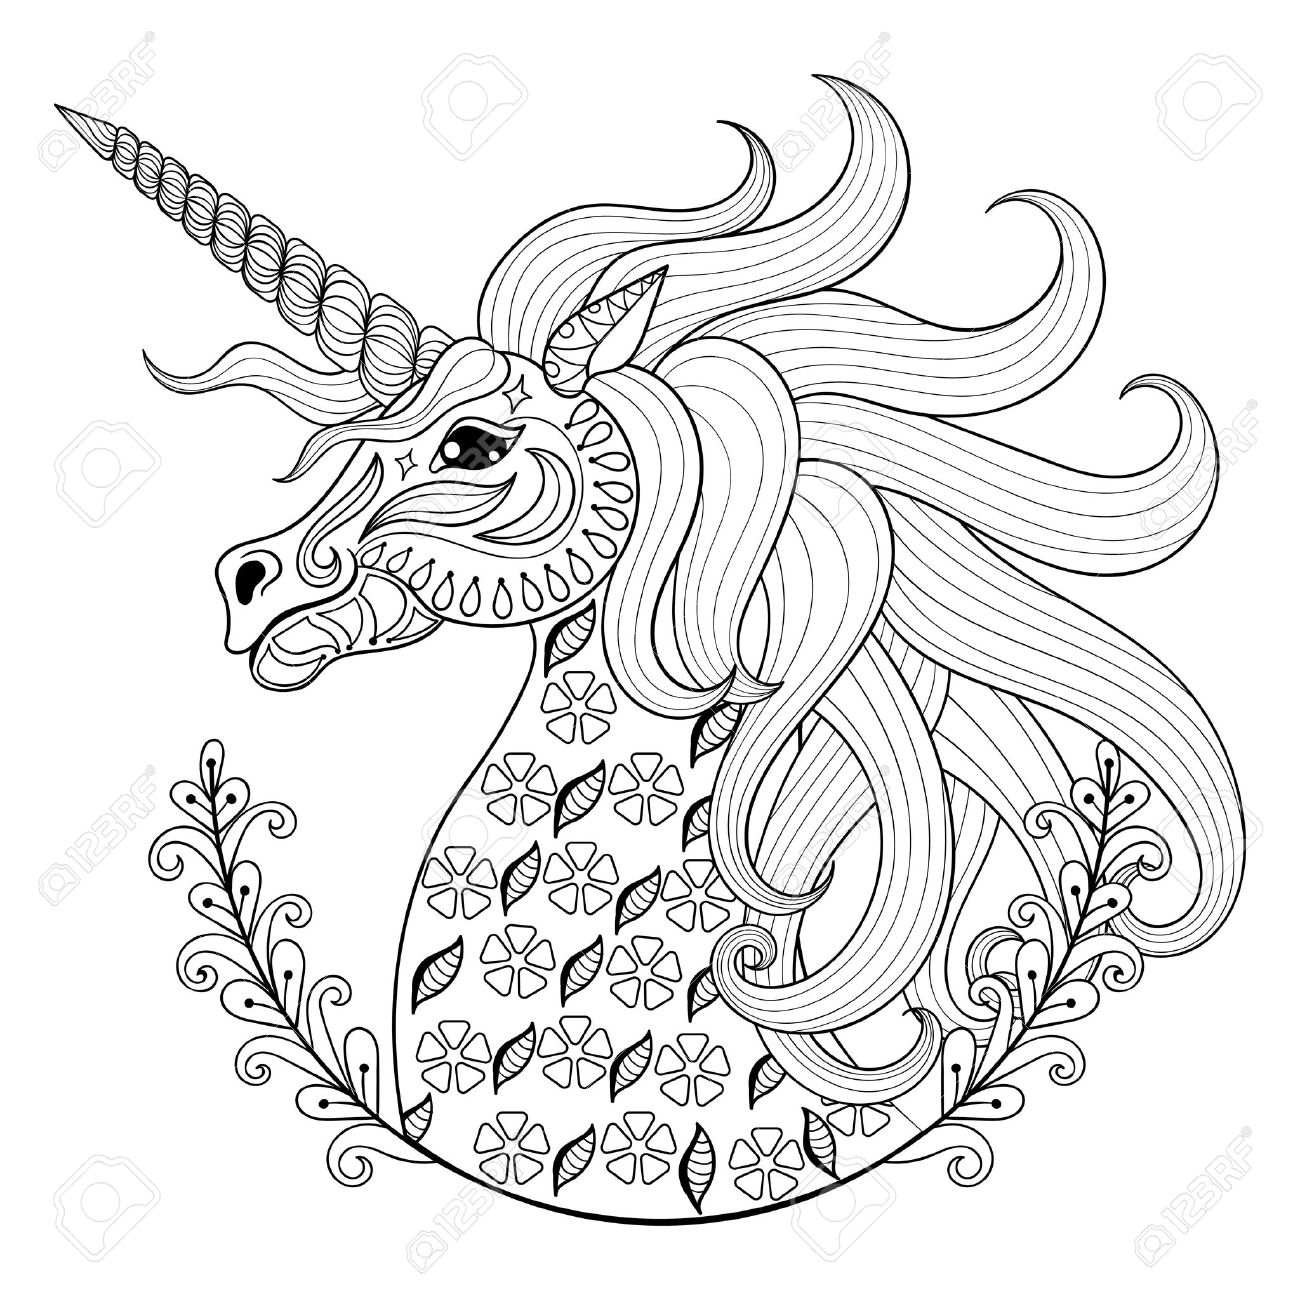 Hand drawing unicorn for adult anti stress coloring pages artistic fairy tale magic animal in